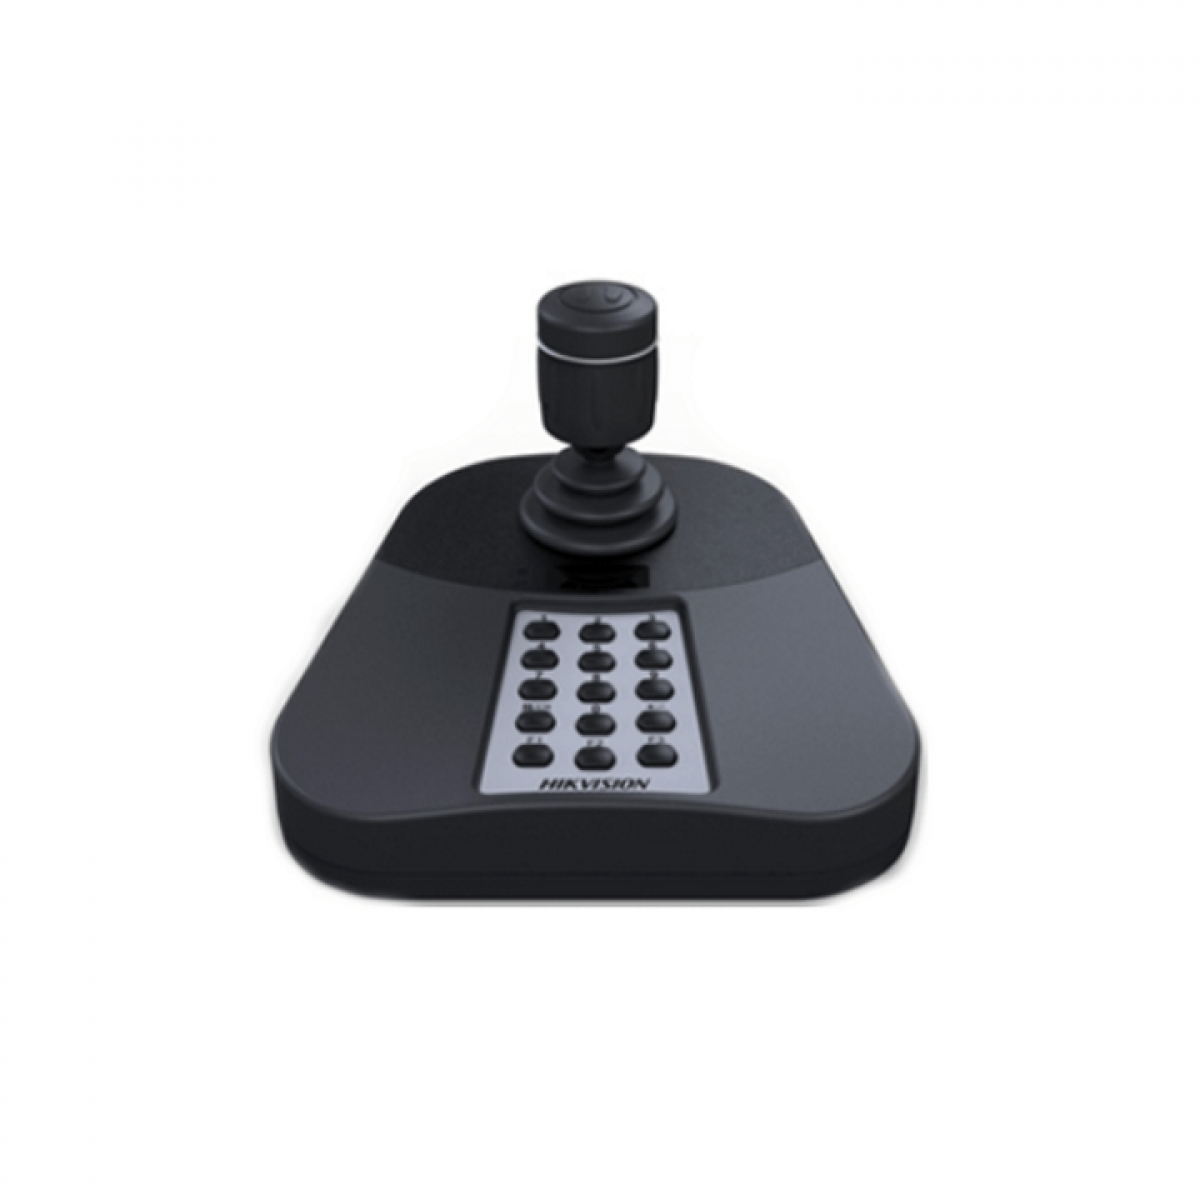 Joystick de video vigilancia Hikvision DS-1005KI